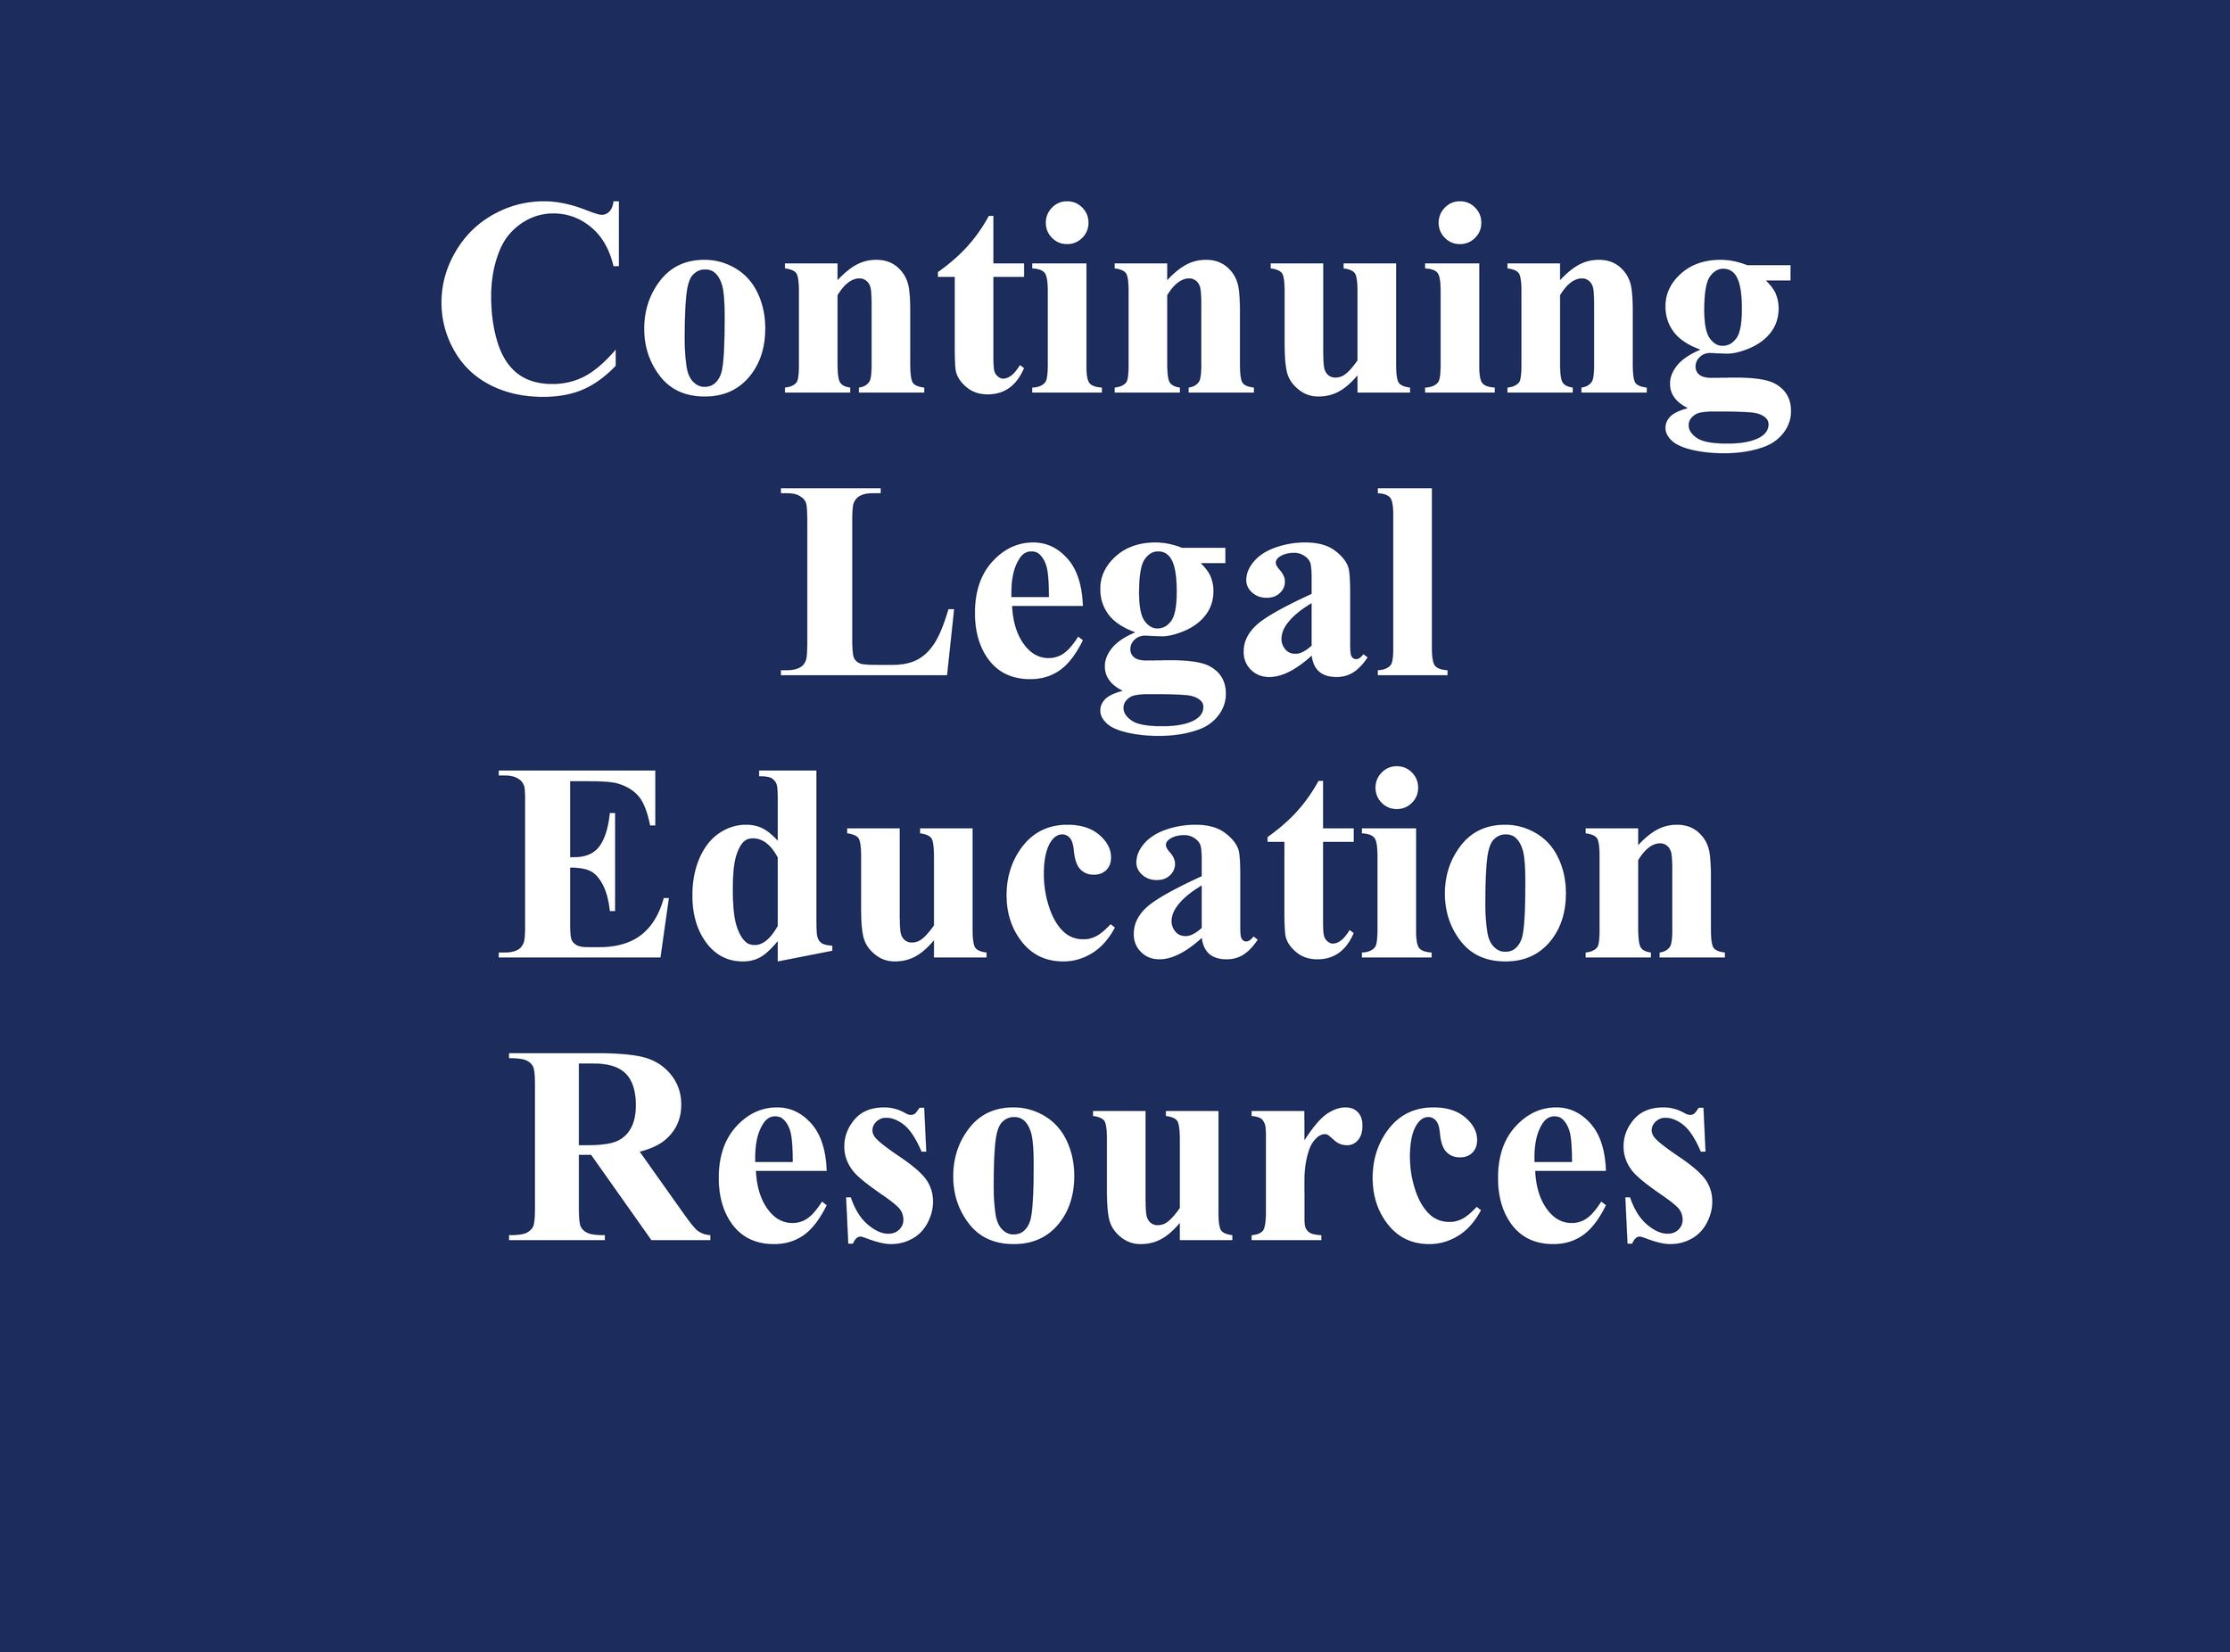 Our Office, in partnership with non-profits and businesses, hosts Continuing Legal Education seminars for legal professionals in Harris County and throughout Texas.